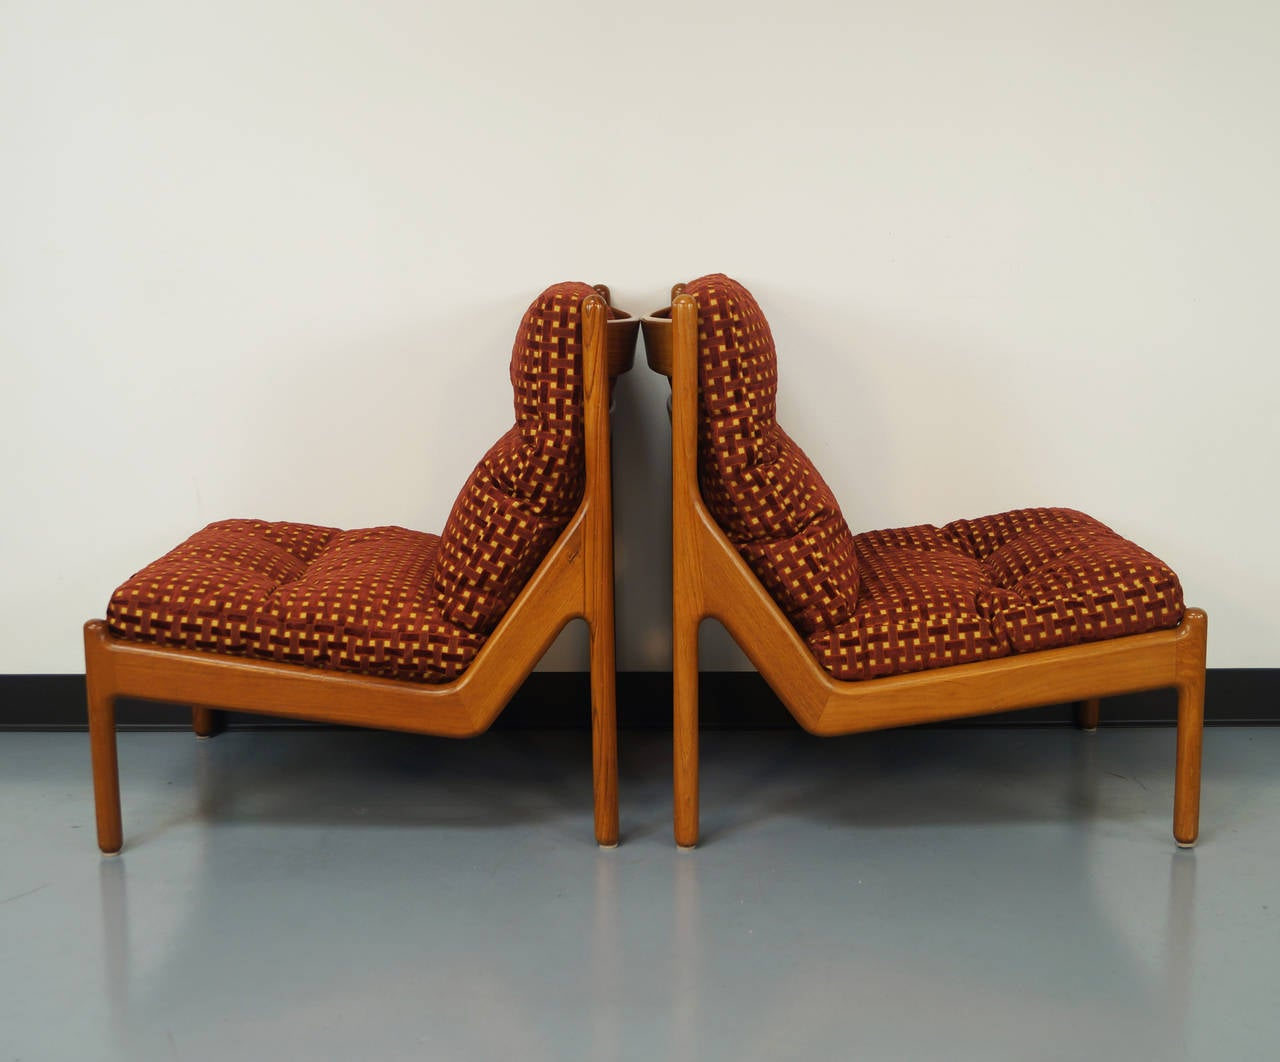 Elegant Danish Teak Lounge Chairs By Niels Bach In Excellent Condition For Sale In  Burbank, CA